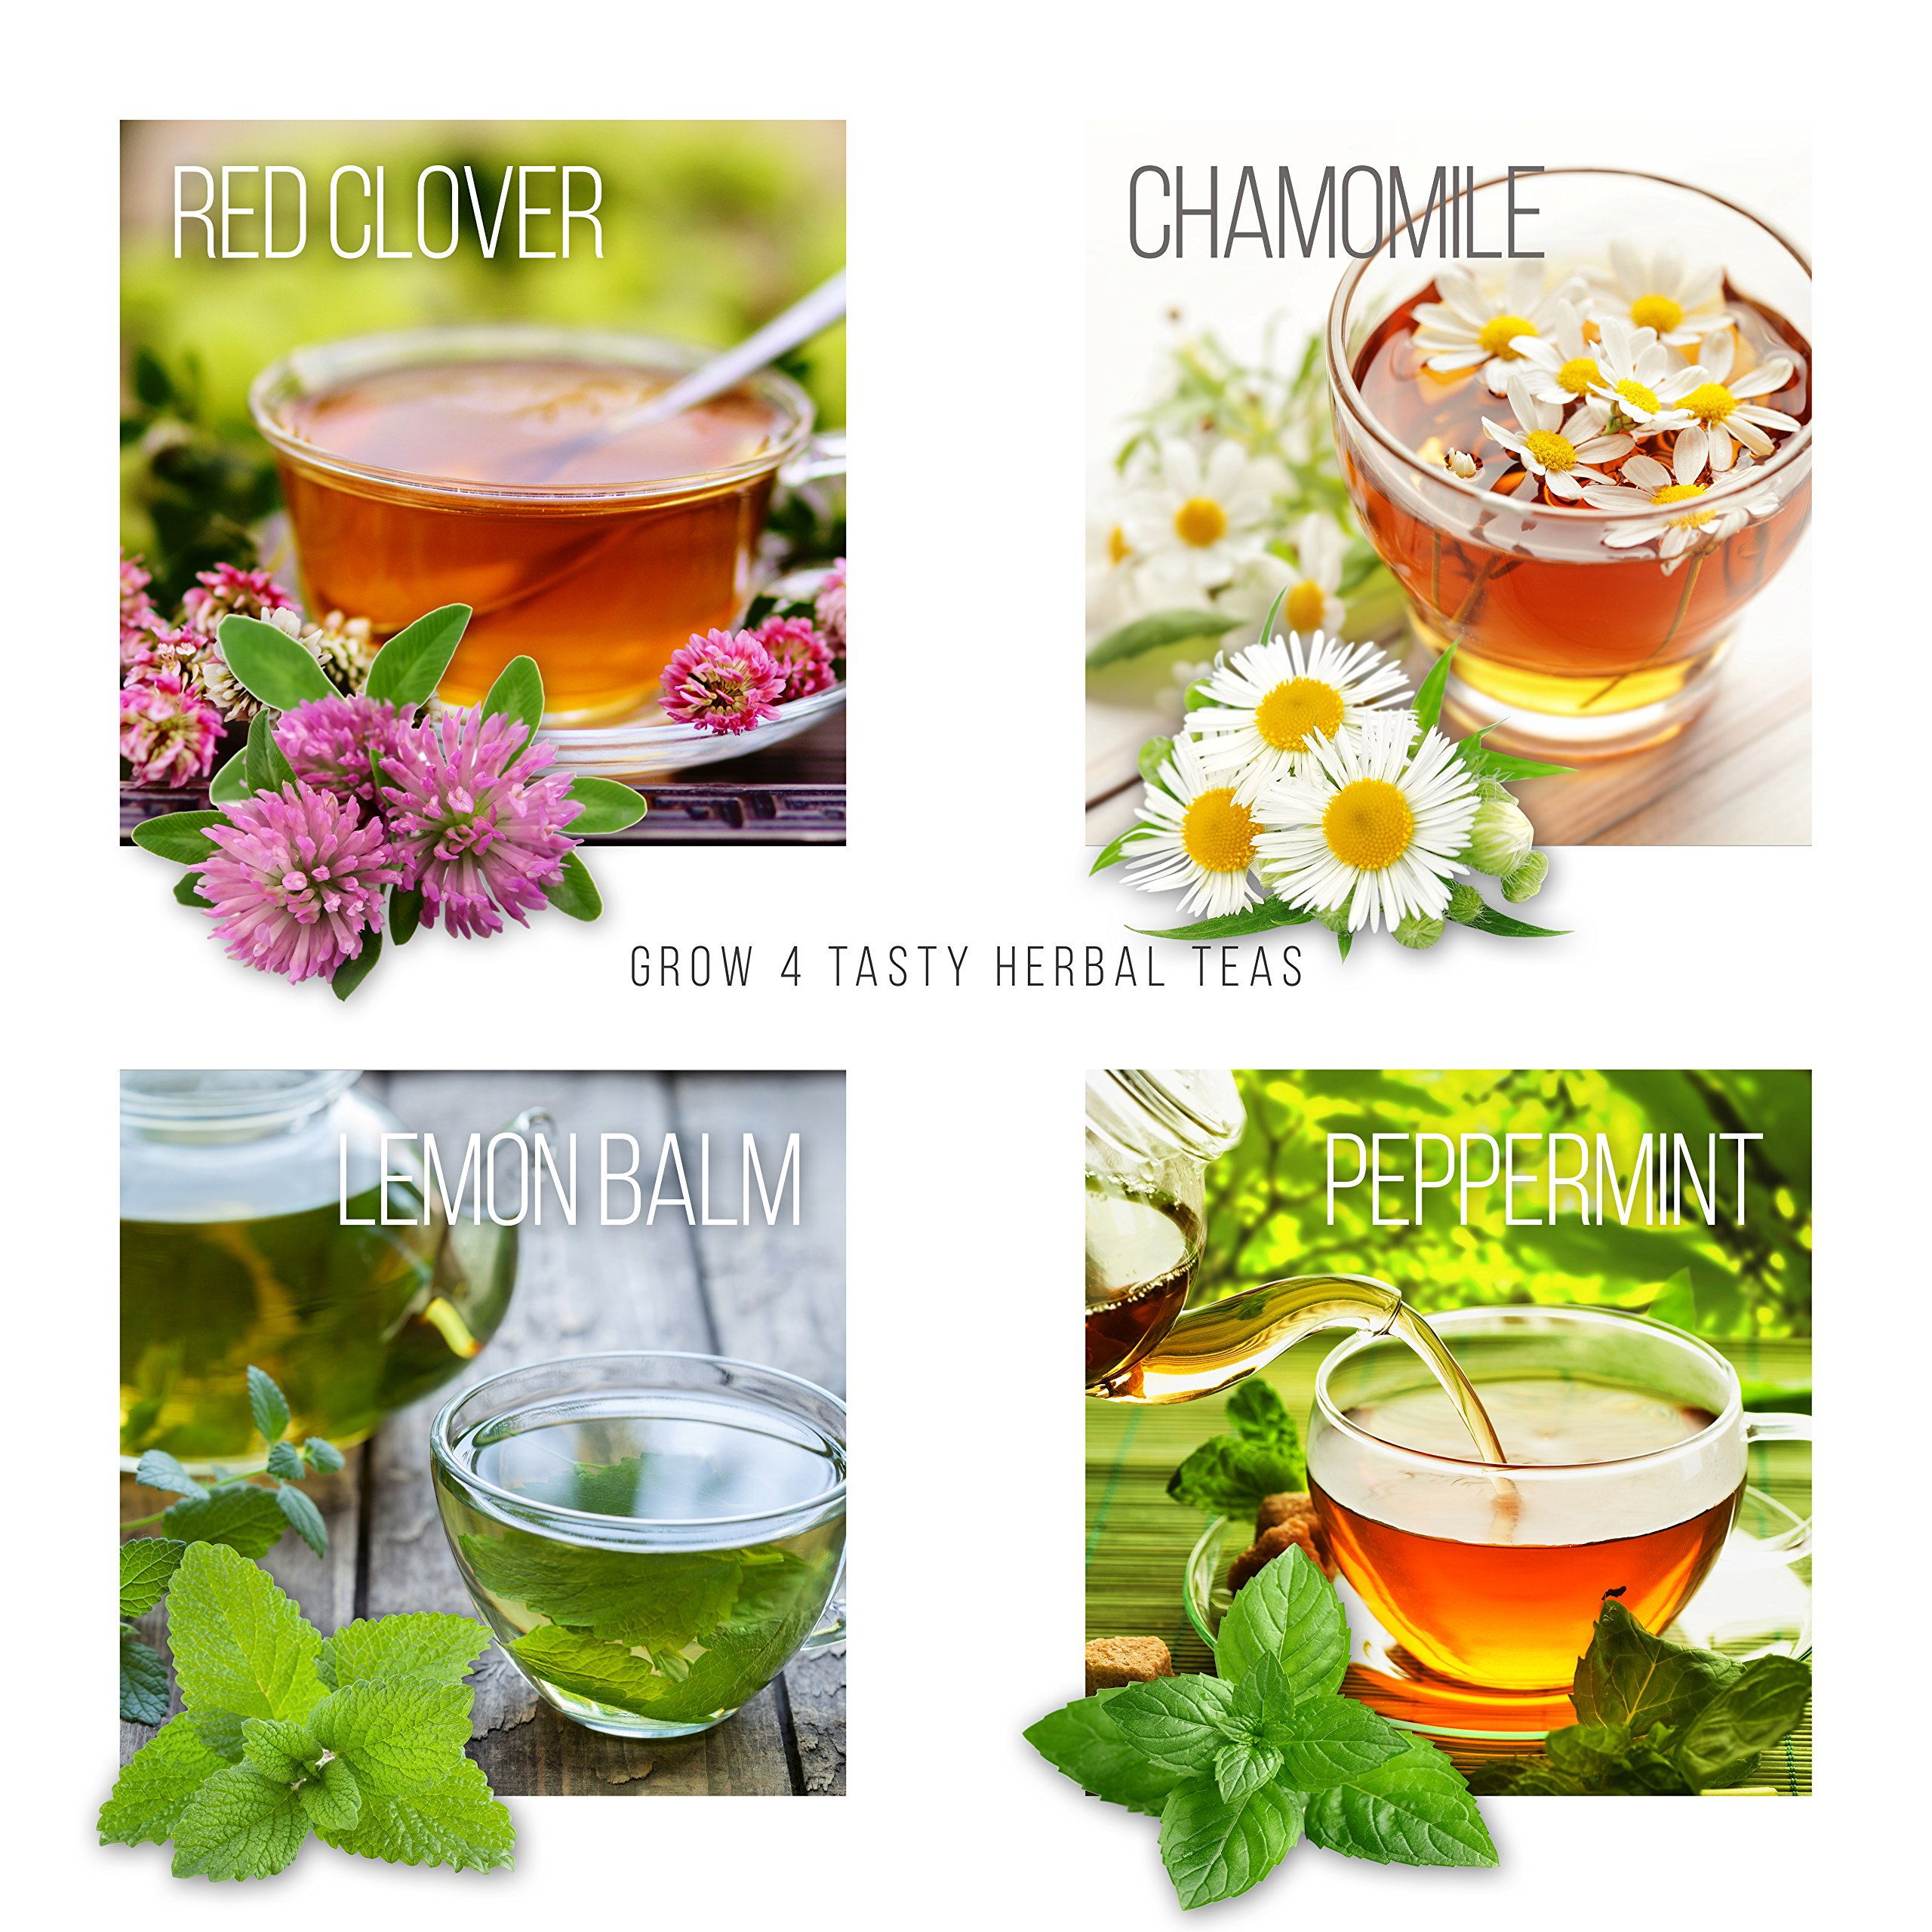 Grow 4 of Your Own Organic Herbal Tea Kit + Stainless Steel Tea Infuser | Chamomile, Peppermint, Lemon Balm, Red Clover | Everything Included: Pots, Soil, Seeds, Booklet, Bamboo Plant Labels by Planters' Choice (Image #2)